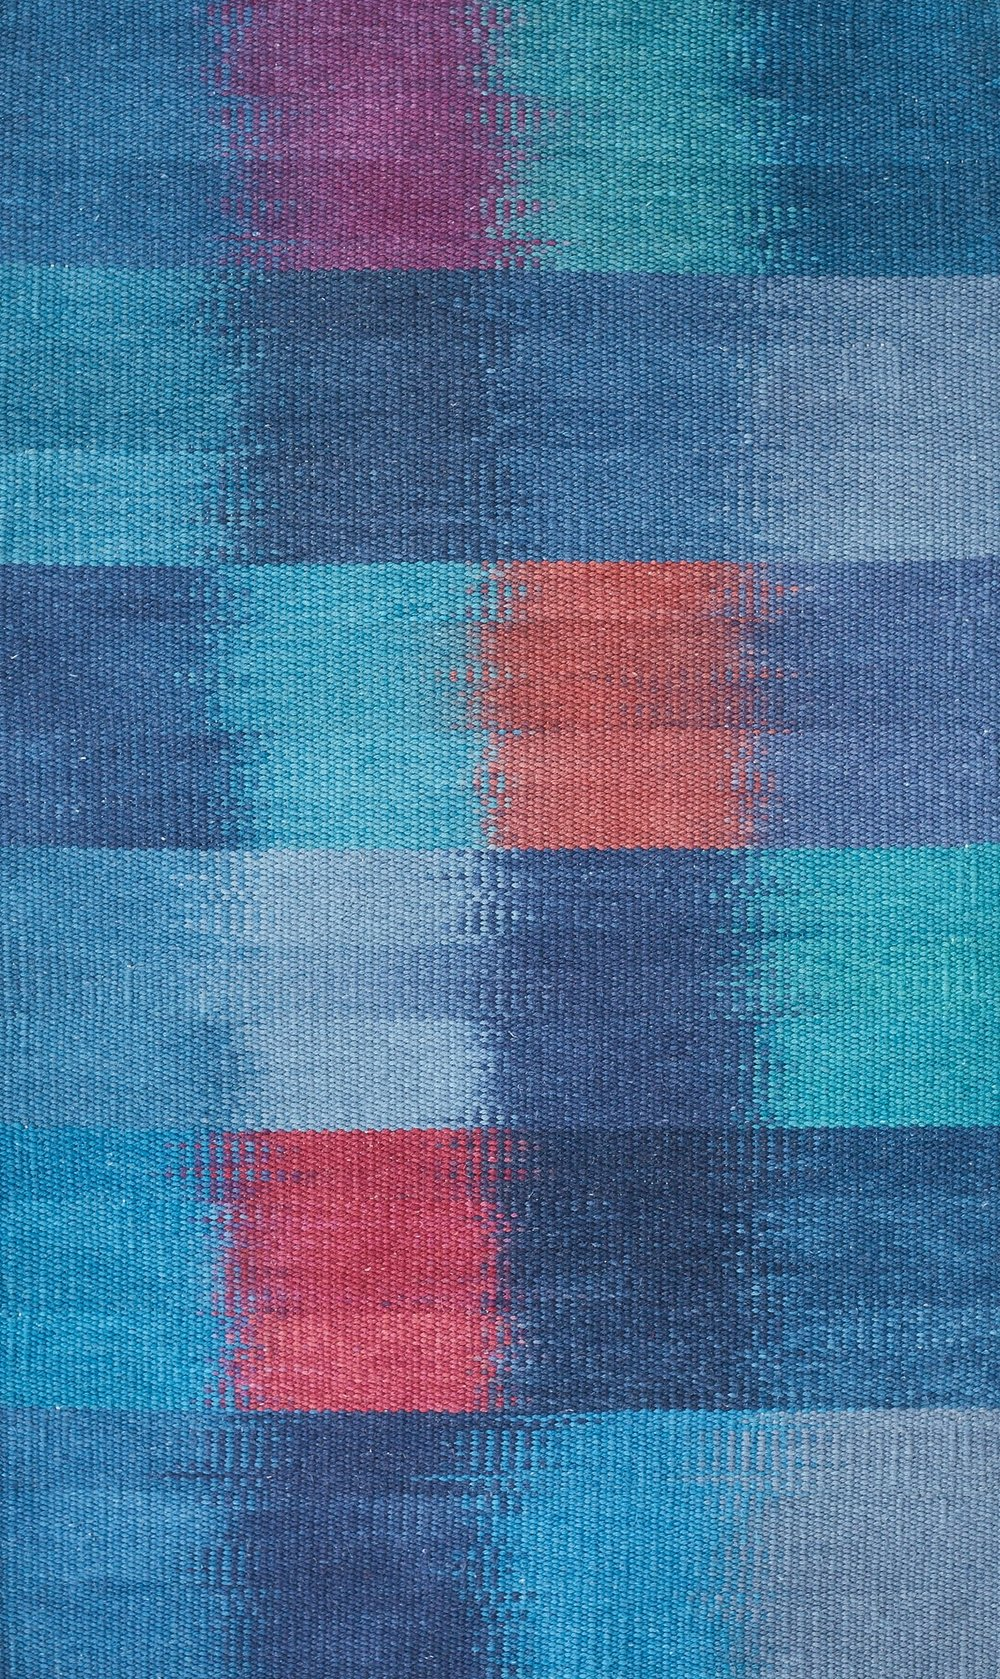 JJ0141.   Cotton & linen.  Hand dyed painted weft.  82 x 131 cm.